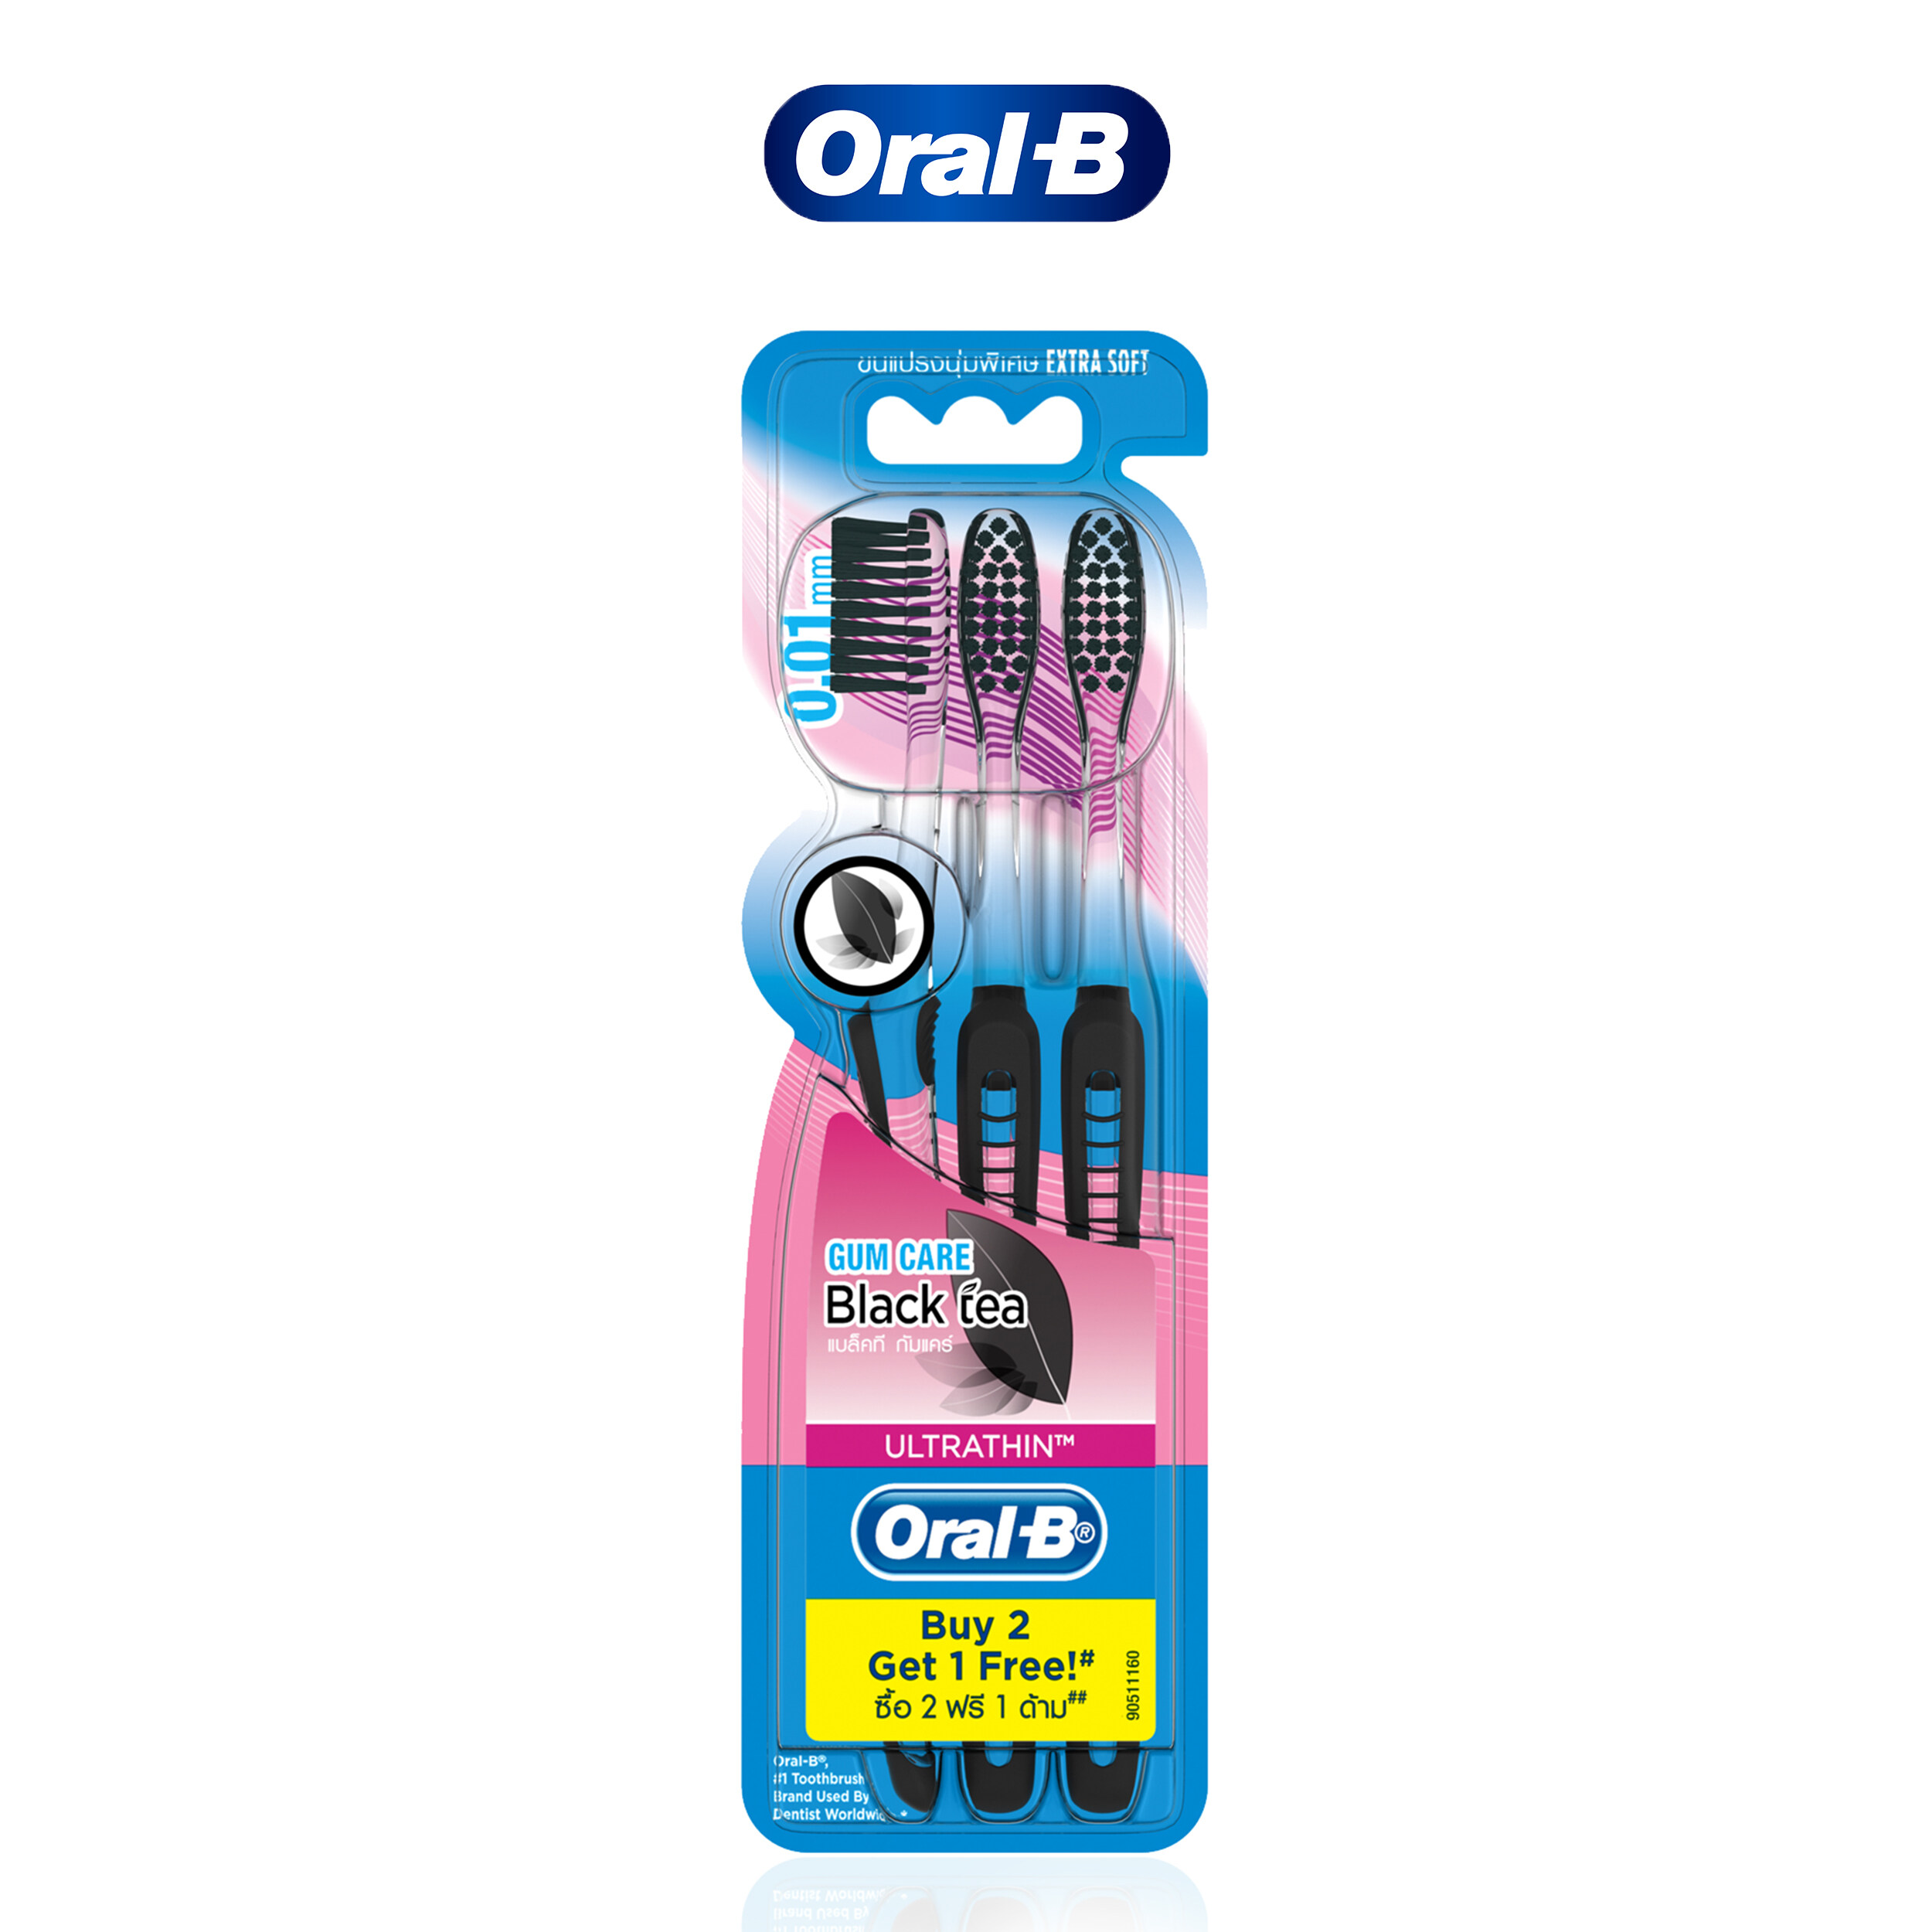 Oral-B UltraThin Black Tea Gum Care (Extra Soft) Manual Toothbrush 3 Count